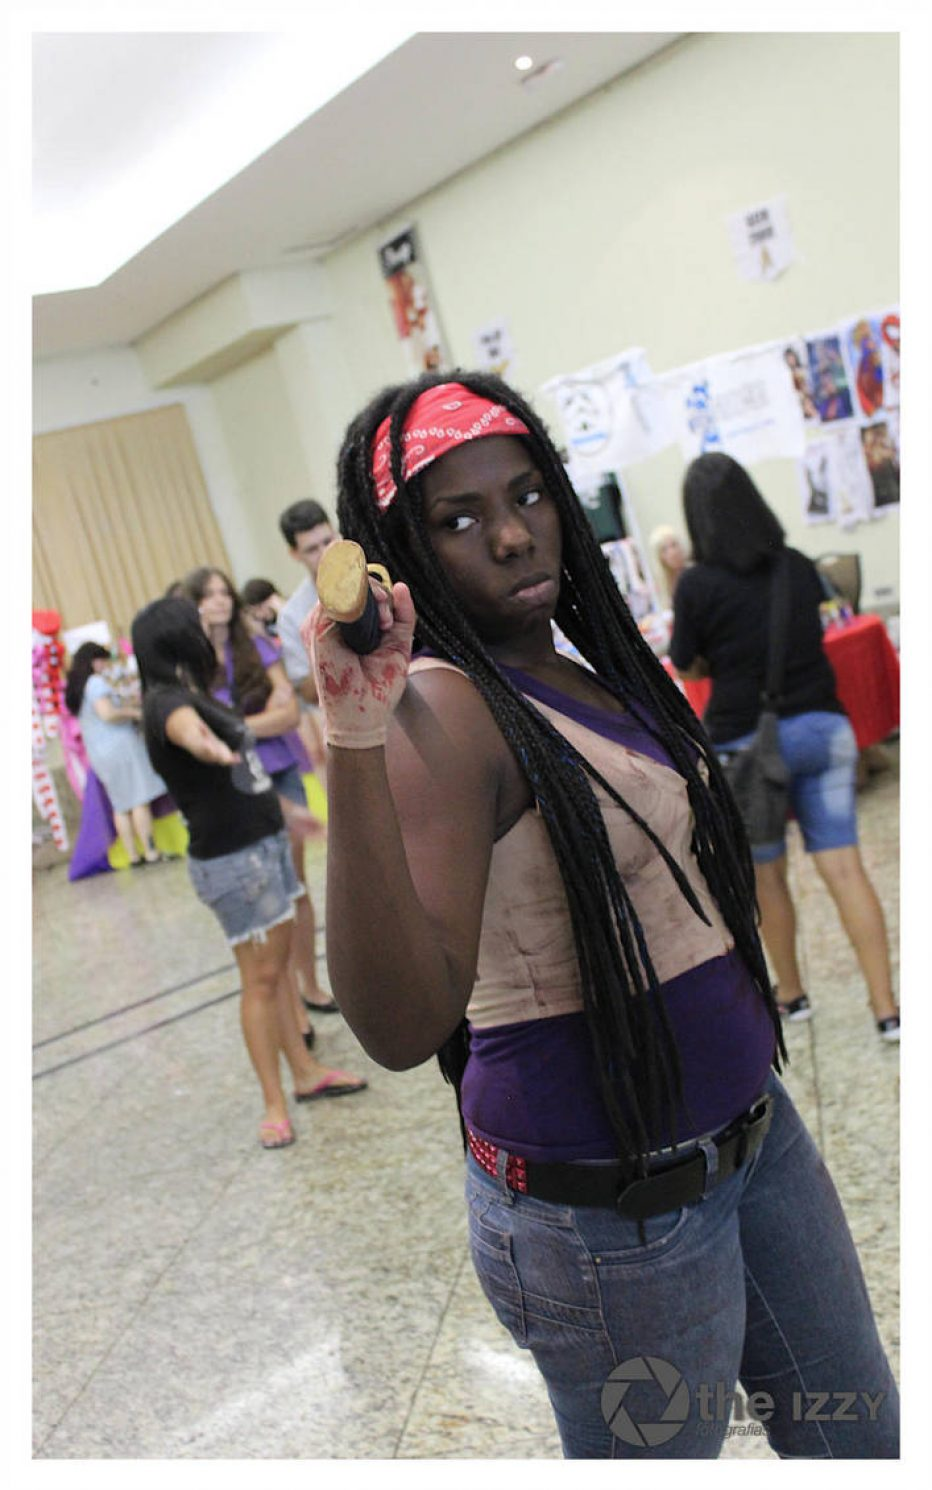 The-Walking-Dead-Michonne-Cosplay-Gamers-Heroes-4.jpg